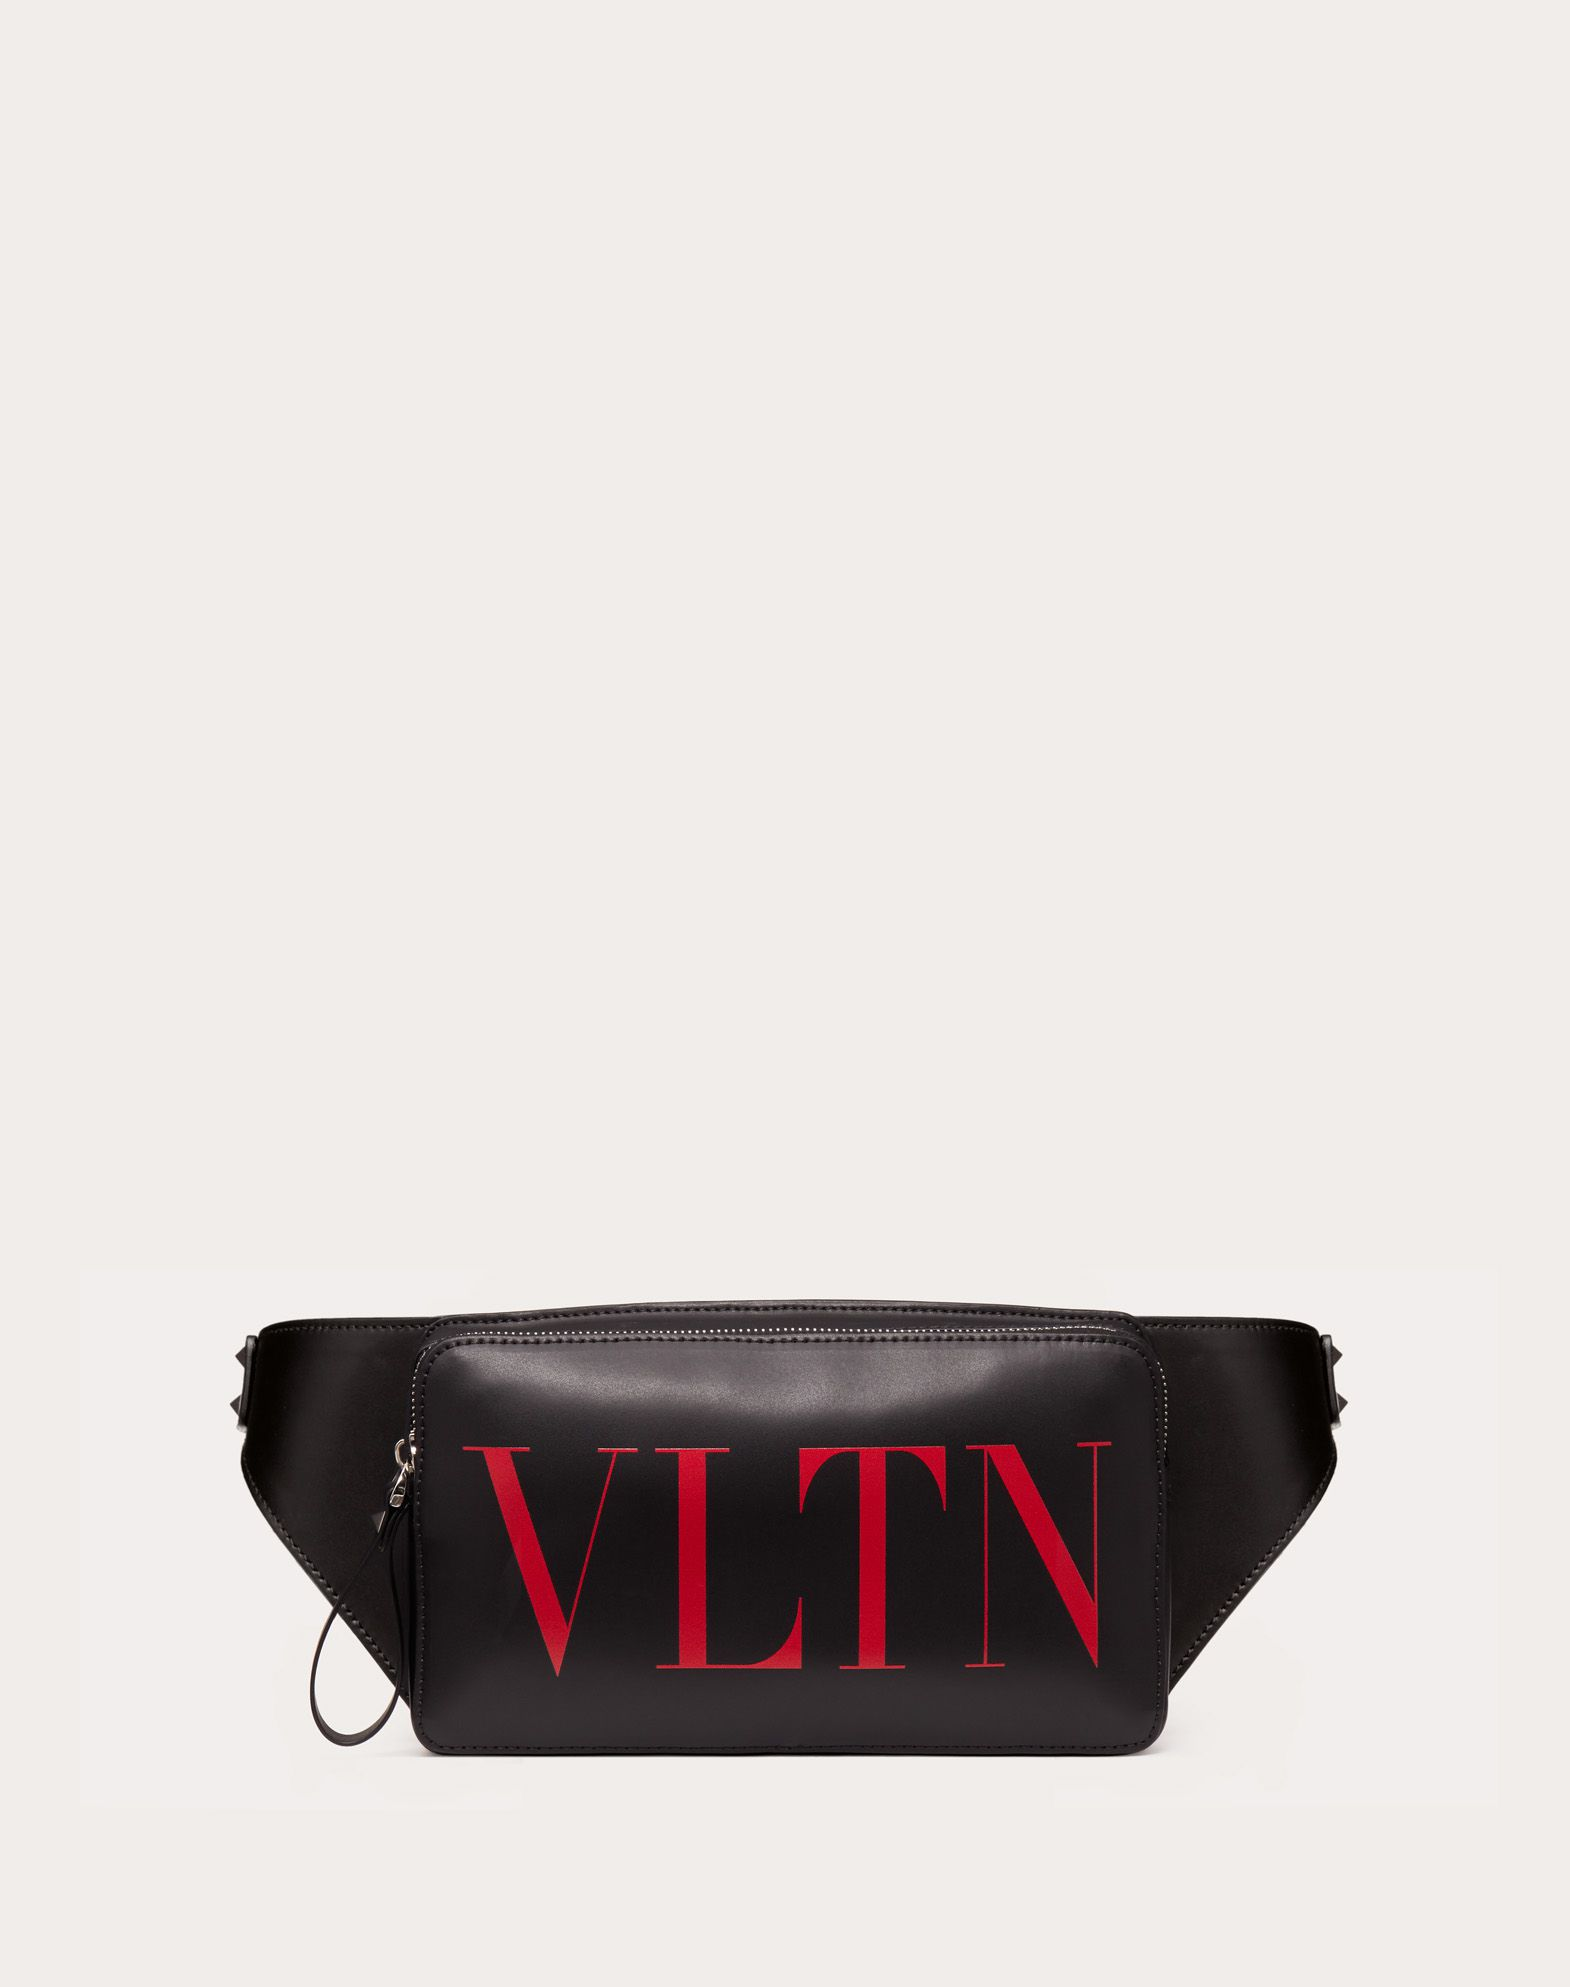 VLTN Leather Belt Bag